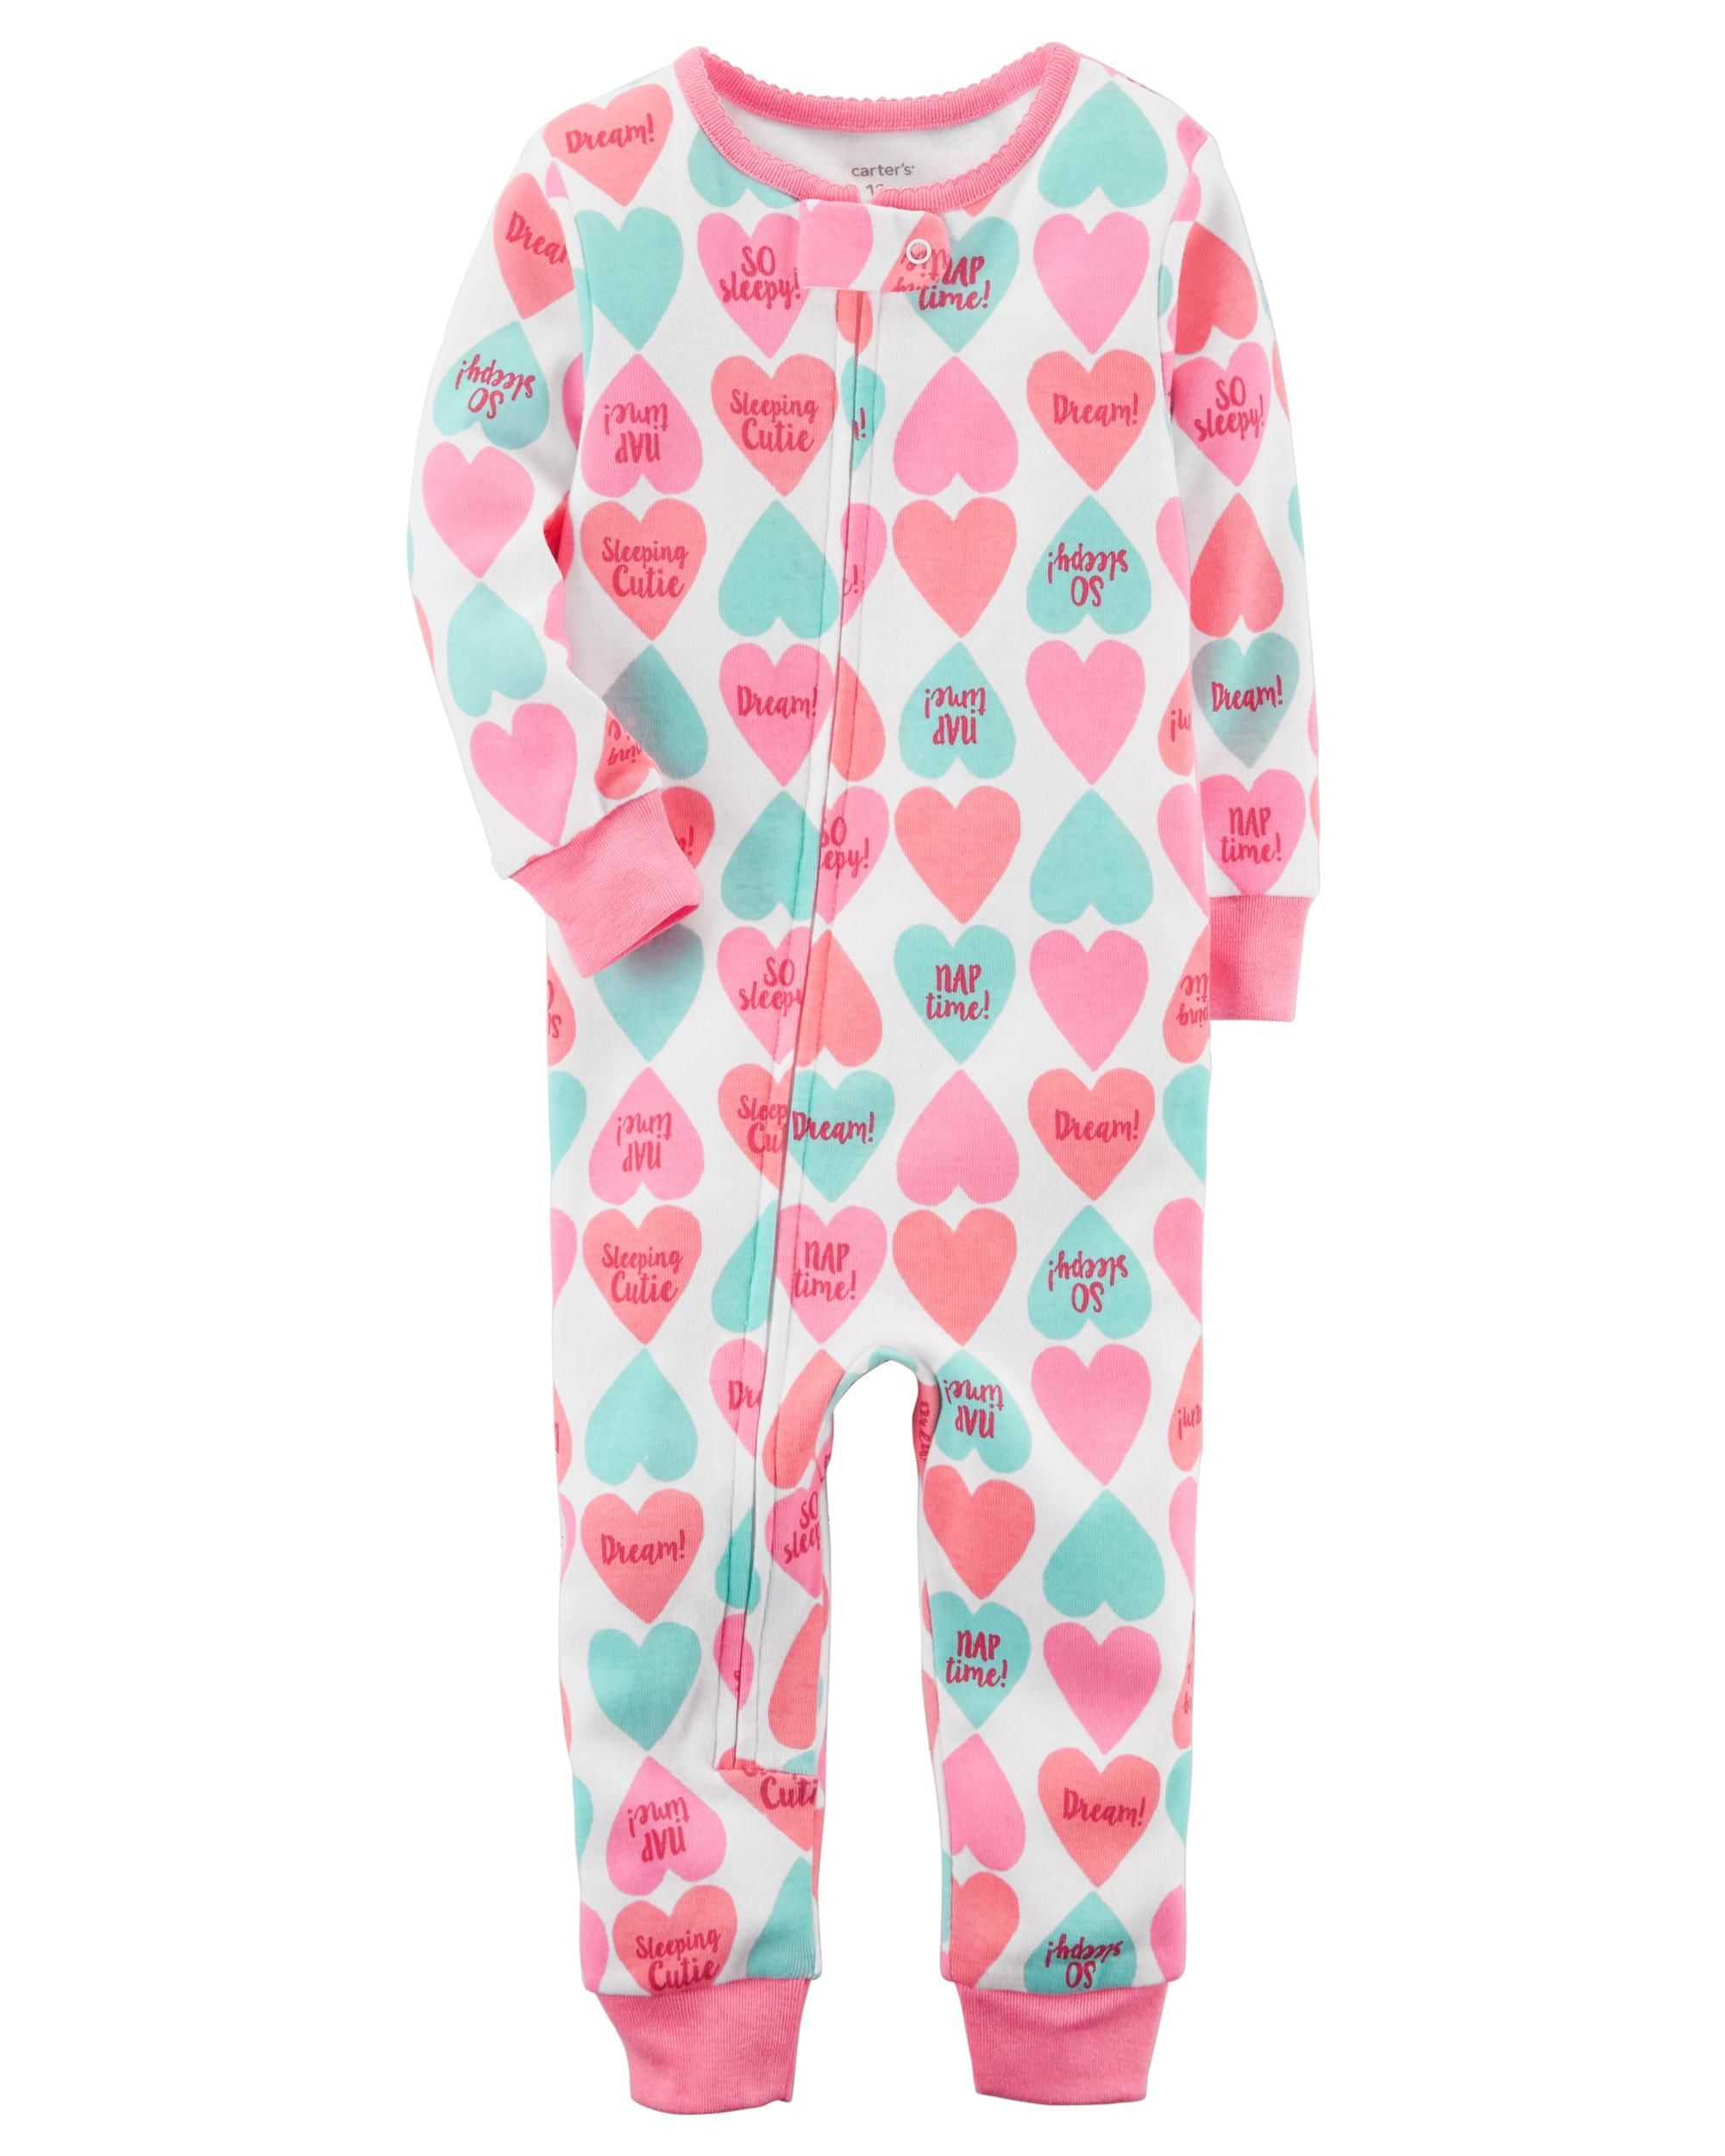 Carter/'s Girl/'s White Multi Color Heart Footed Pajamas PJs Size 4T